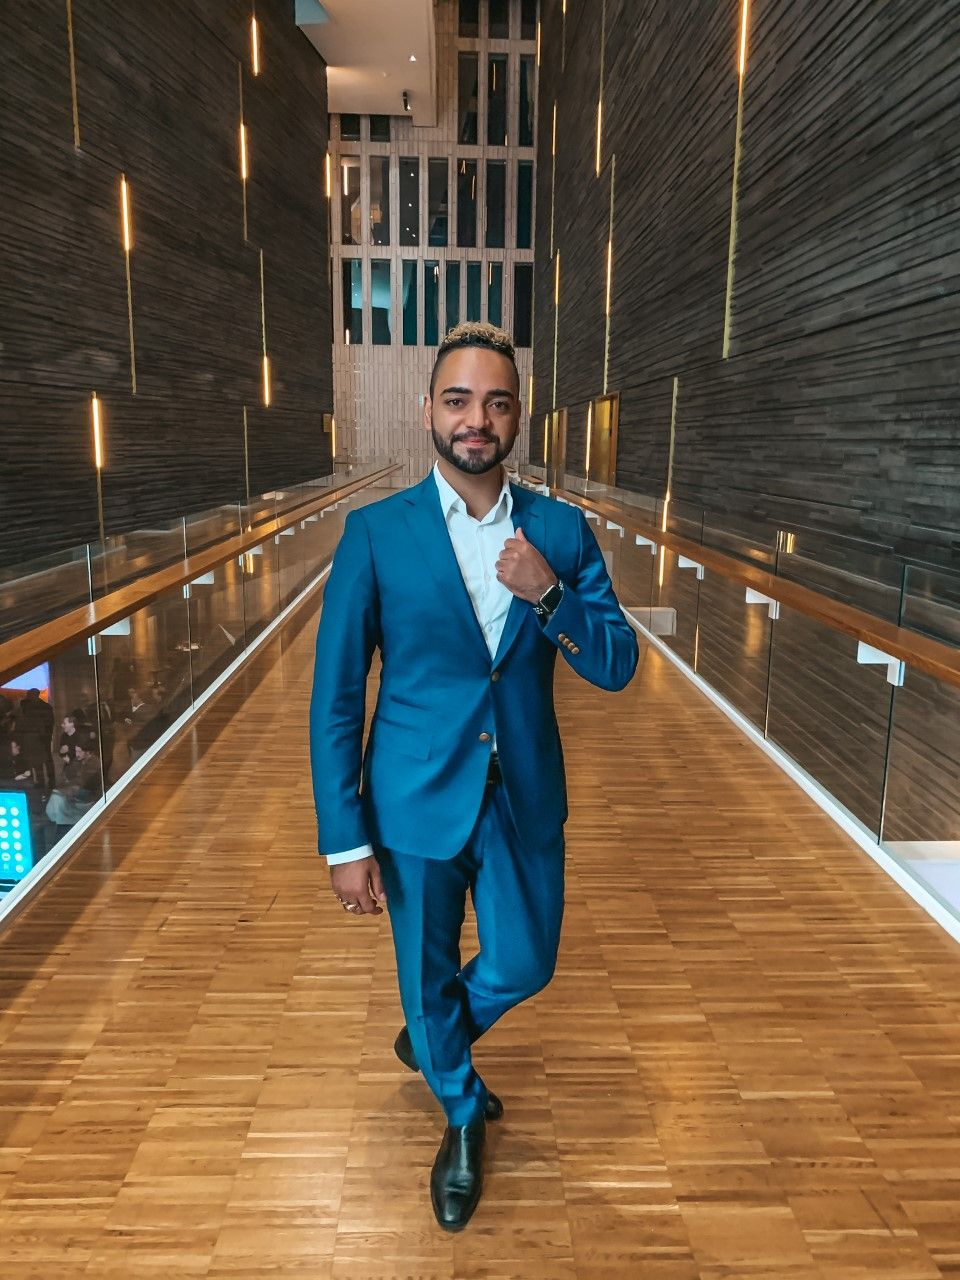 A picture of Mariano in a blue suit standing in a wooden-clad walkway.